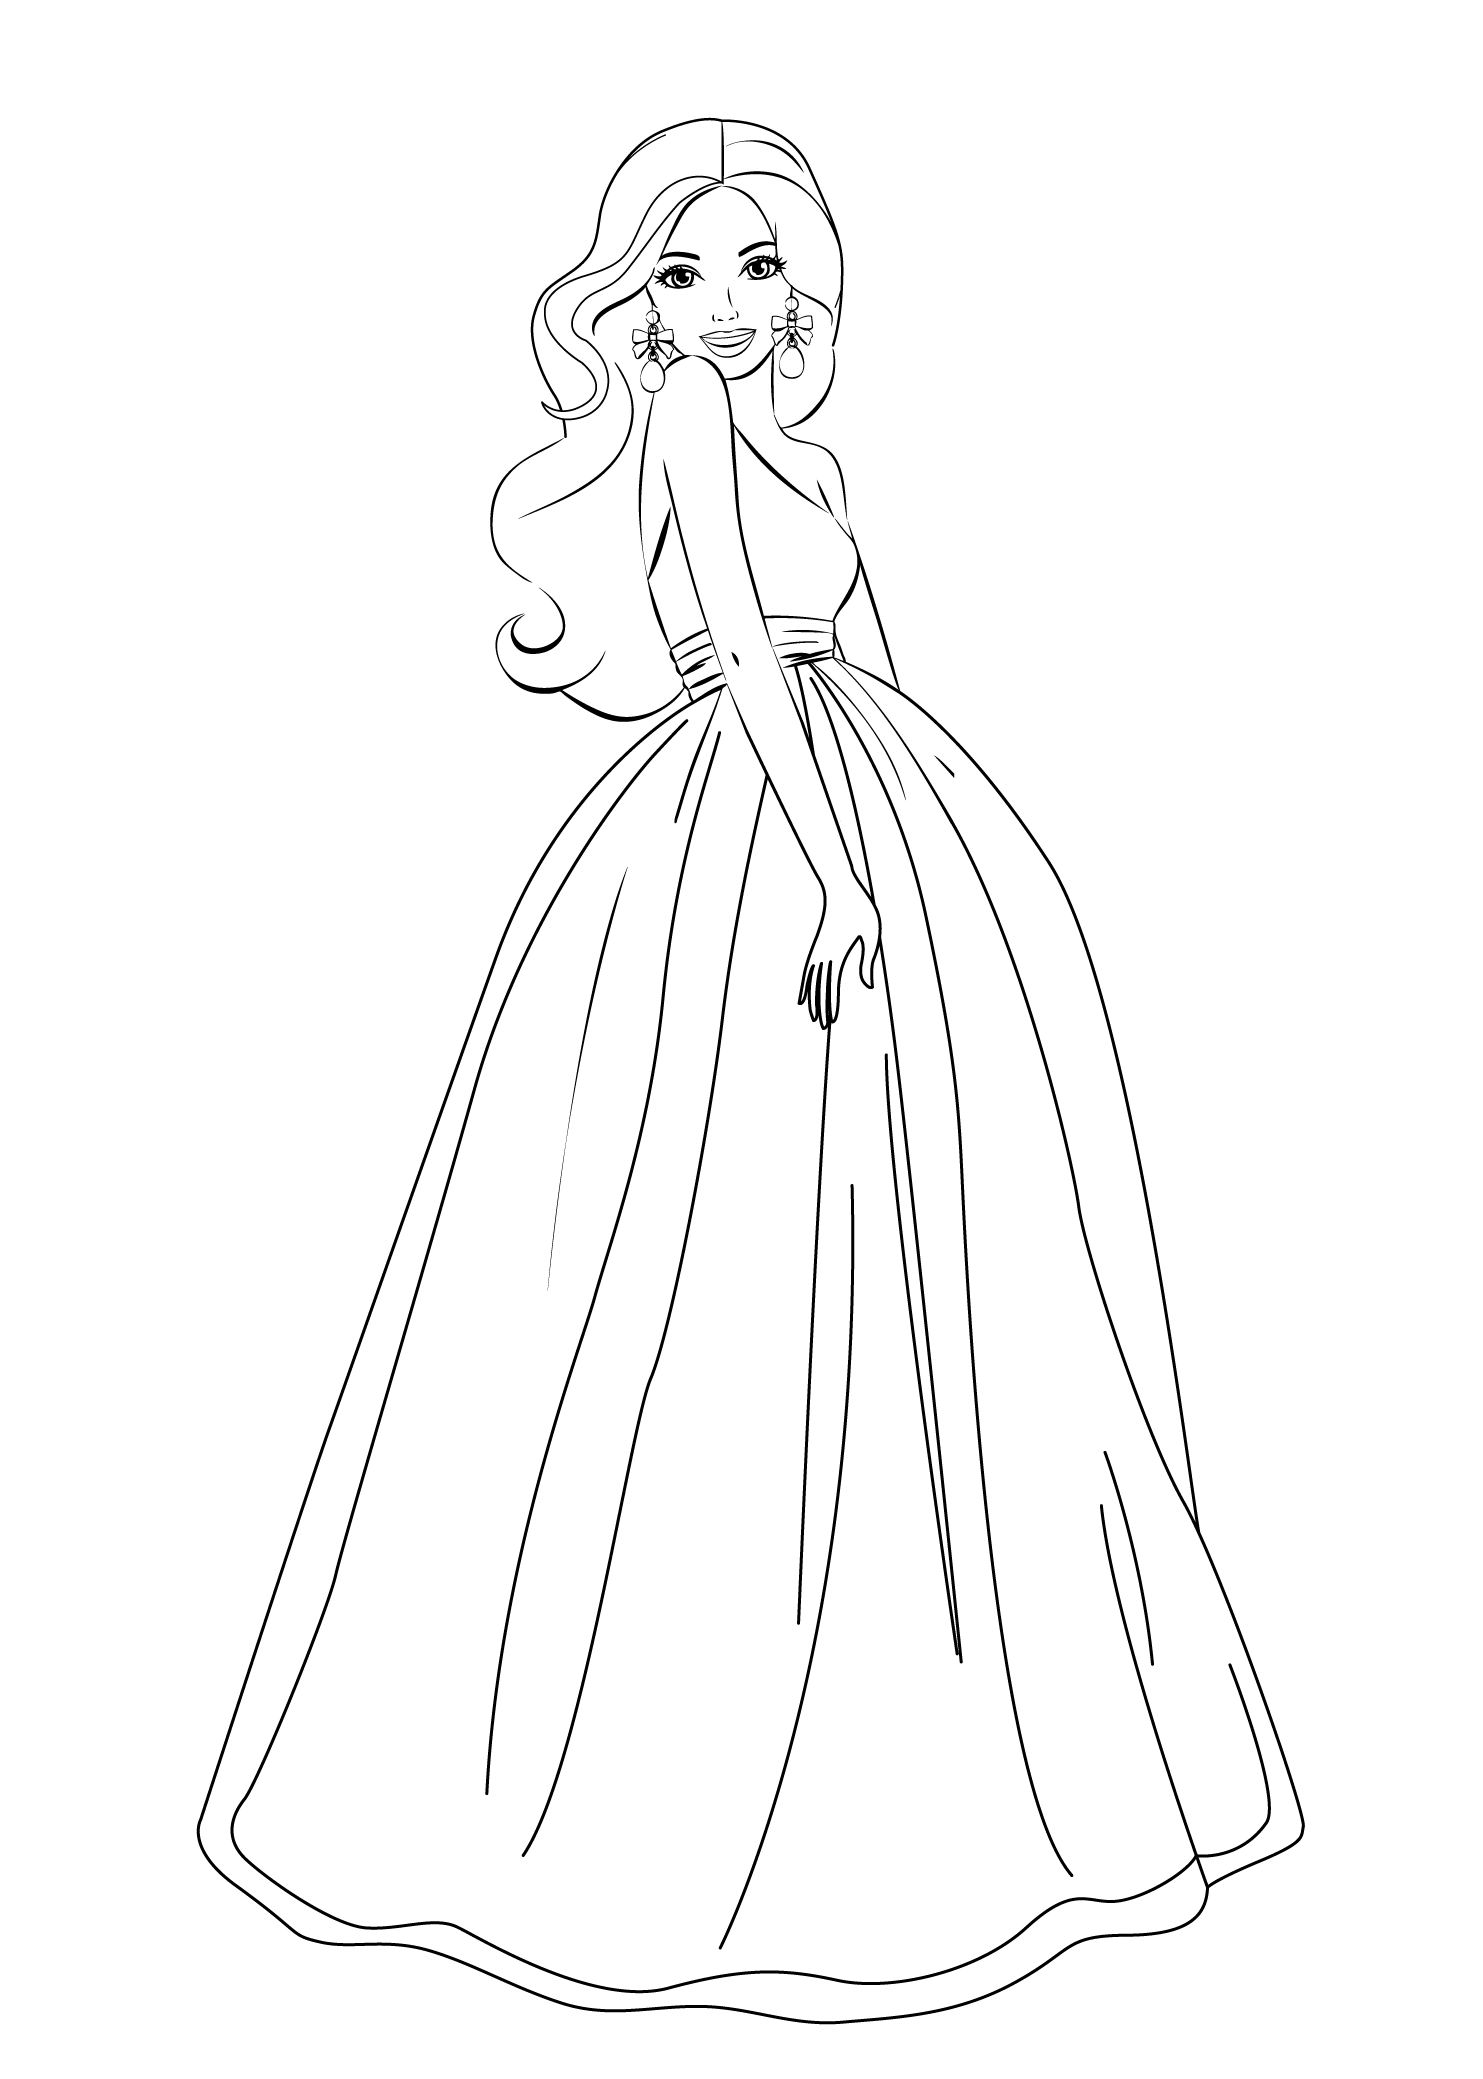 colour in pictures for girls manga coloring pages to download and print for free for colour pictures in girls